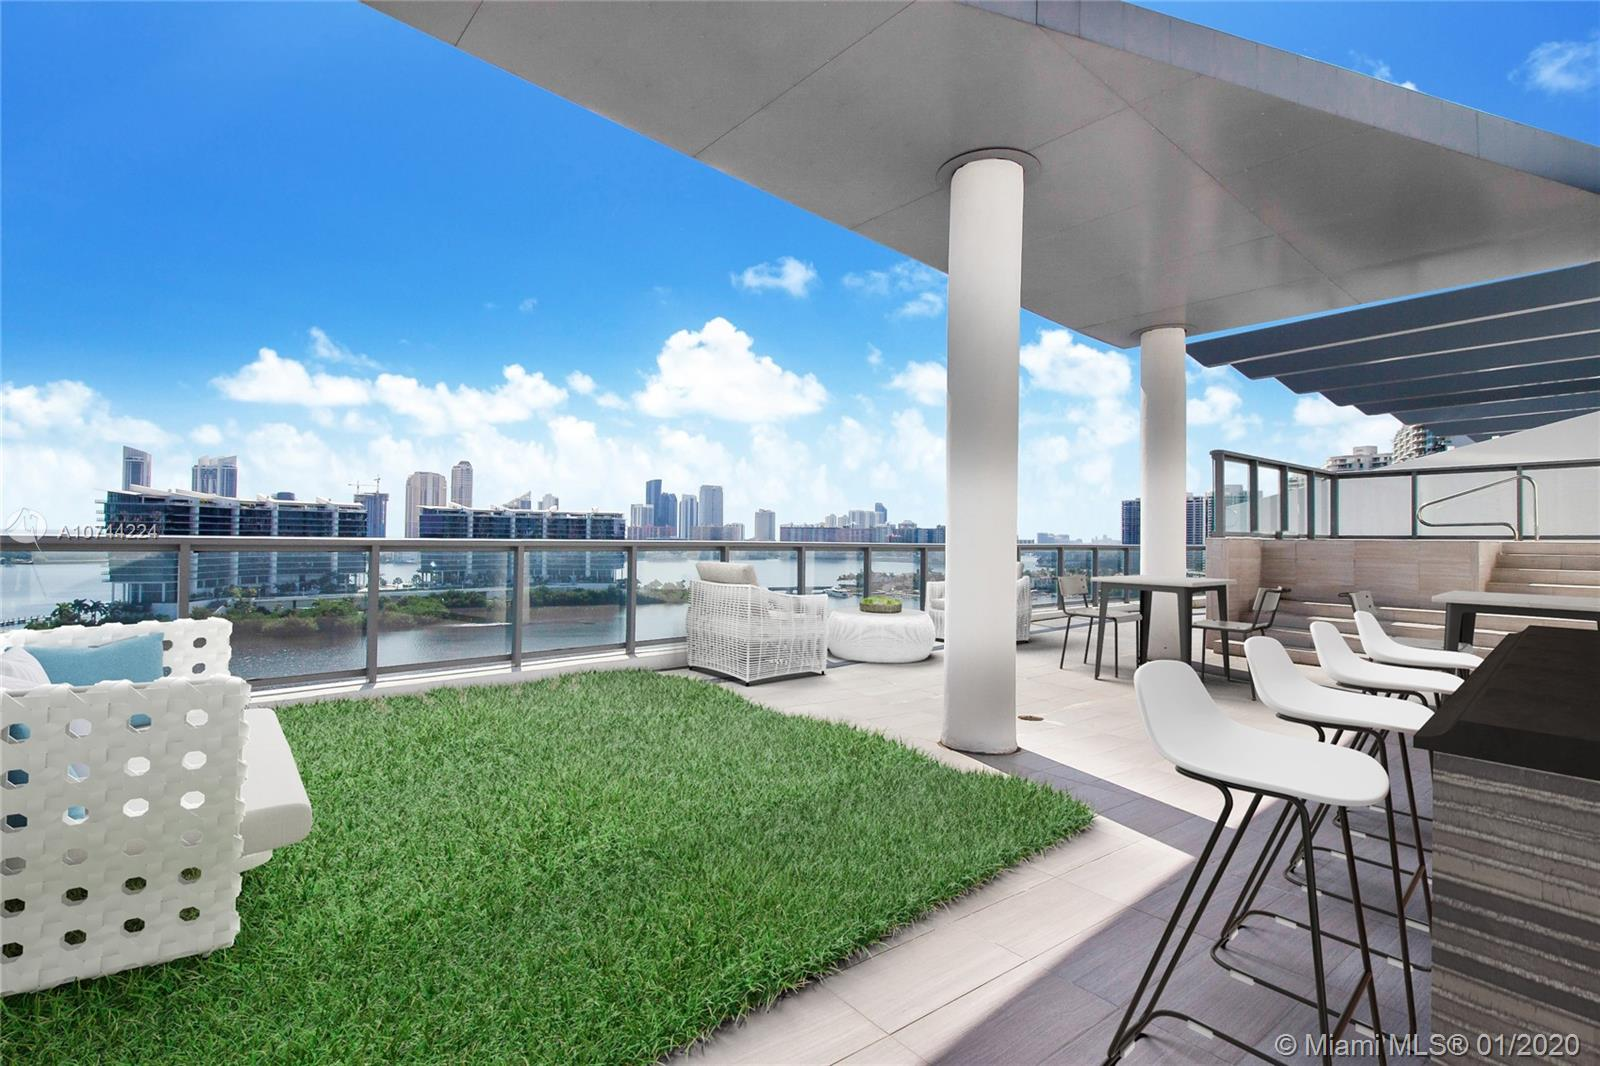 New on Market! Ultra Modern & Expansive Flow-thru corner Upper Penthouse 18 W/, largest PH at Echo Aventura boasting 4,000 SF of living area, private 1,400  SF Rooftop deck overlooking Sunny Isles Beach, the bay and Intracoastal.  Enjoy the BEST of the best views in all of Aventura from your wrap-around terrace compete with outdoor grill/kitchen & outdoor dining area gazing upon the lights of city skyline,  This immense, 4-bed 5.5-bath + den luxury residence is enclosed with floor-to-12 ft. ceiling glass walls allowing for the maximum exposure of endless, panoramic water views, throughout. All living spaces & bedrooms are over-sized, open concept high-end kitchen, private elevator, walk-in closets, & beautiful luxurious bathrooms.